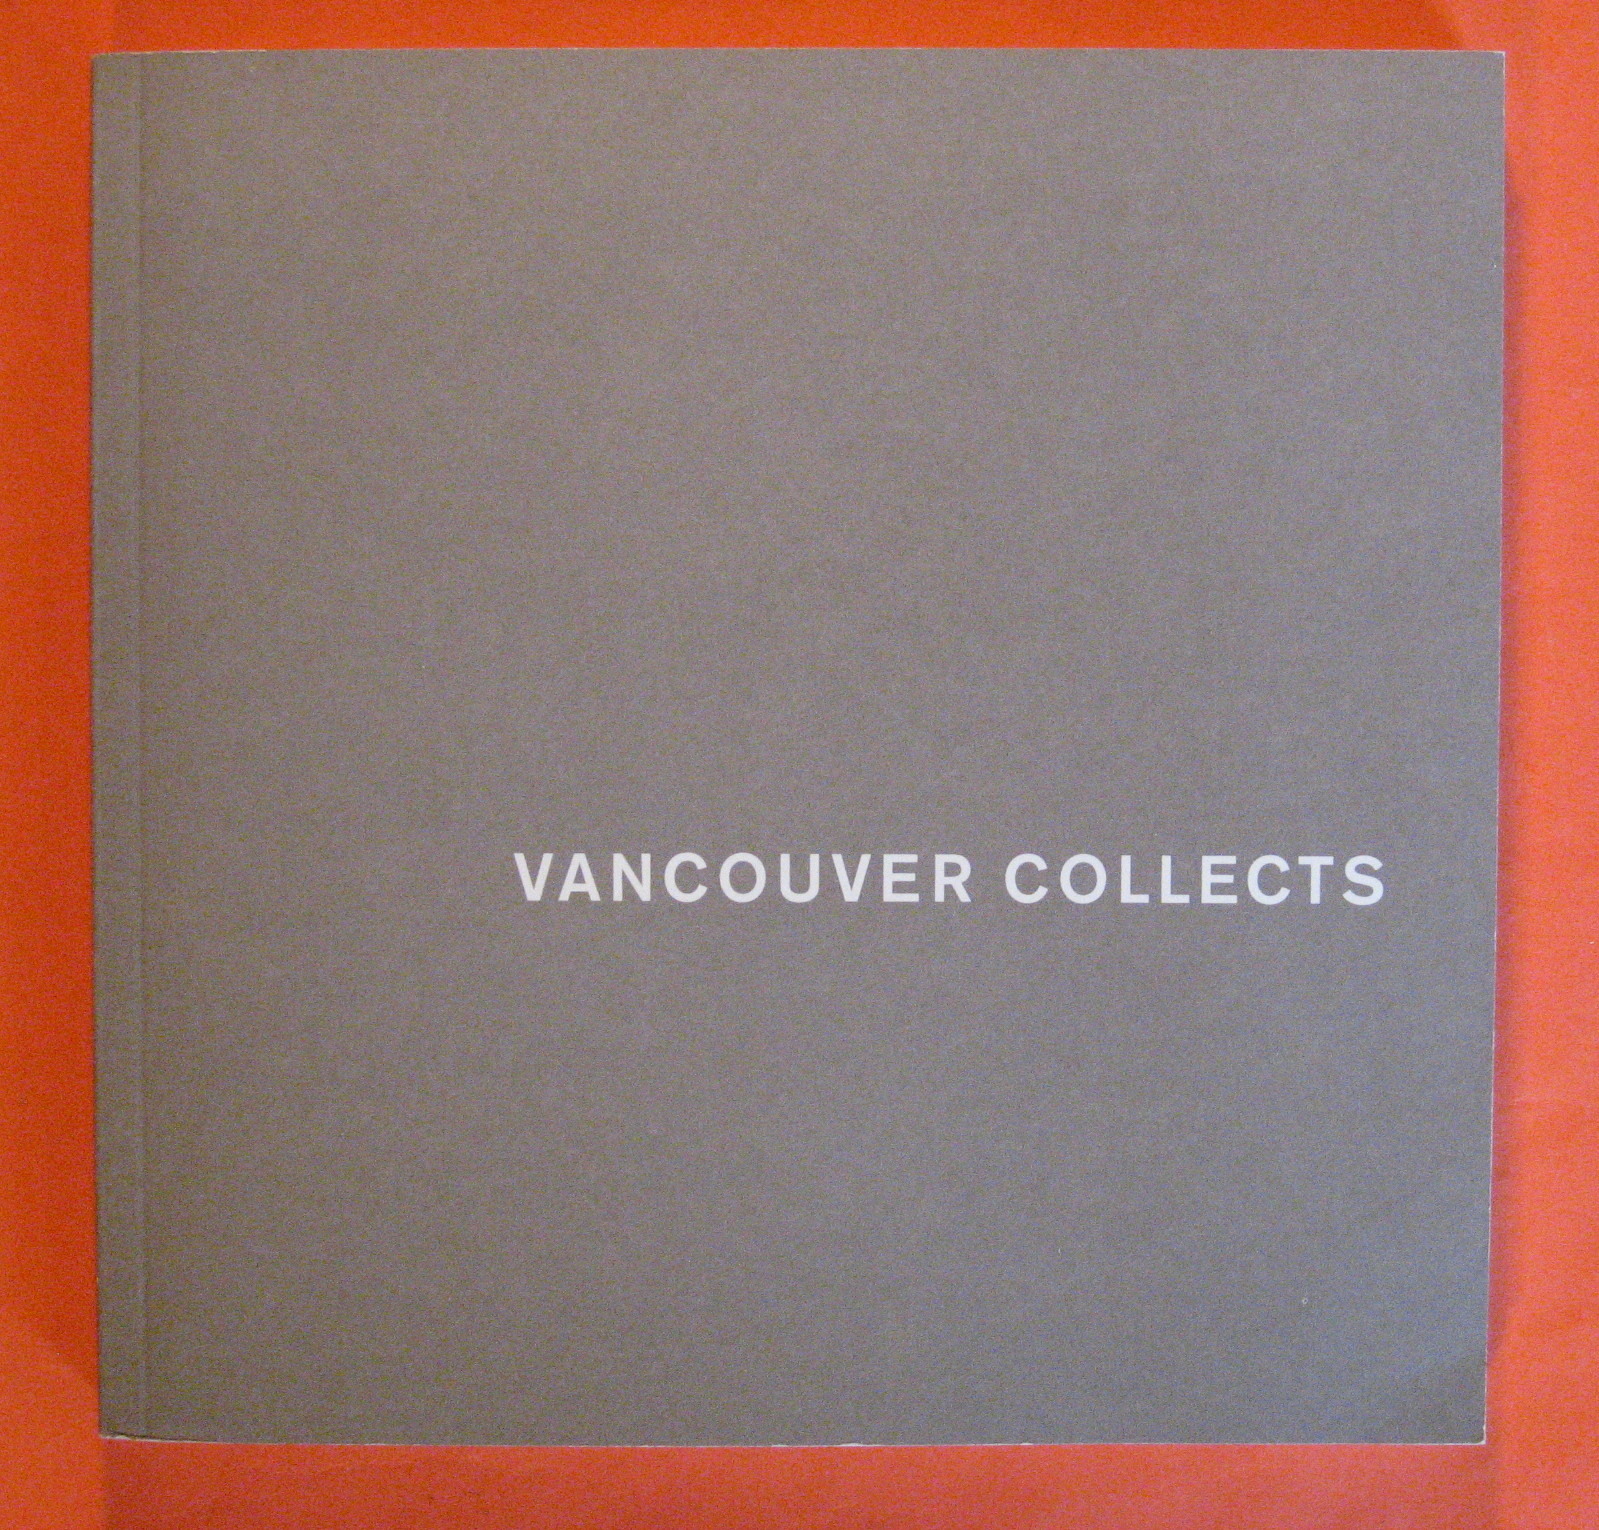 Vancouver Collects: The Group of Seven; Sun pictures to photoconceptualism : photography from local collections; Between passion and logic : contemporary and modern Art, Vancouver Art Gallery